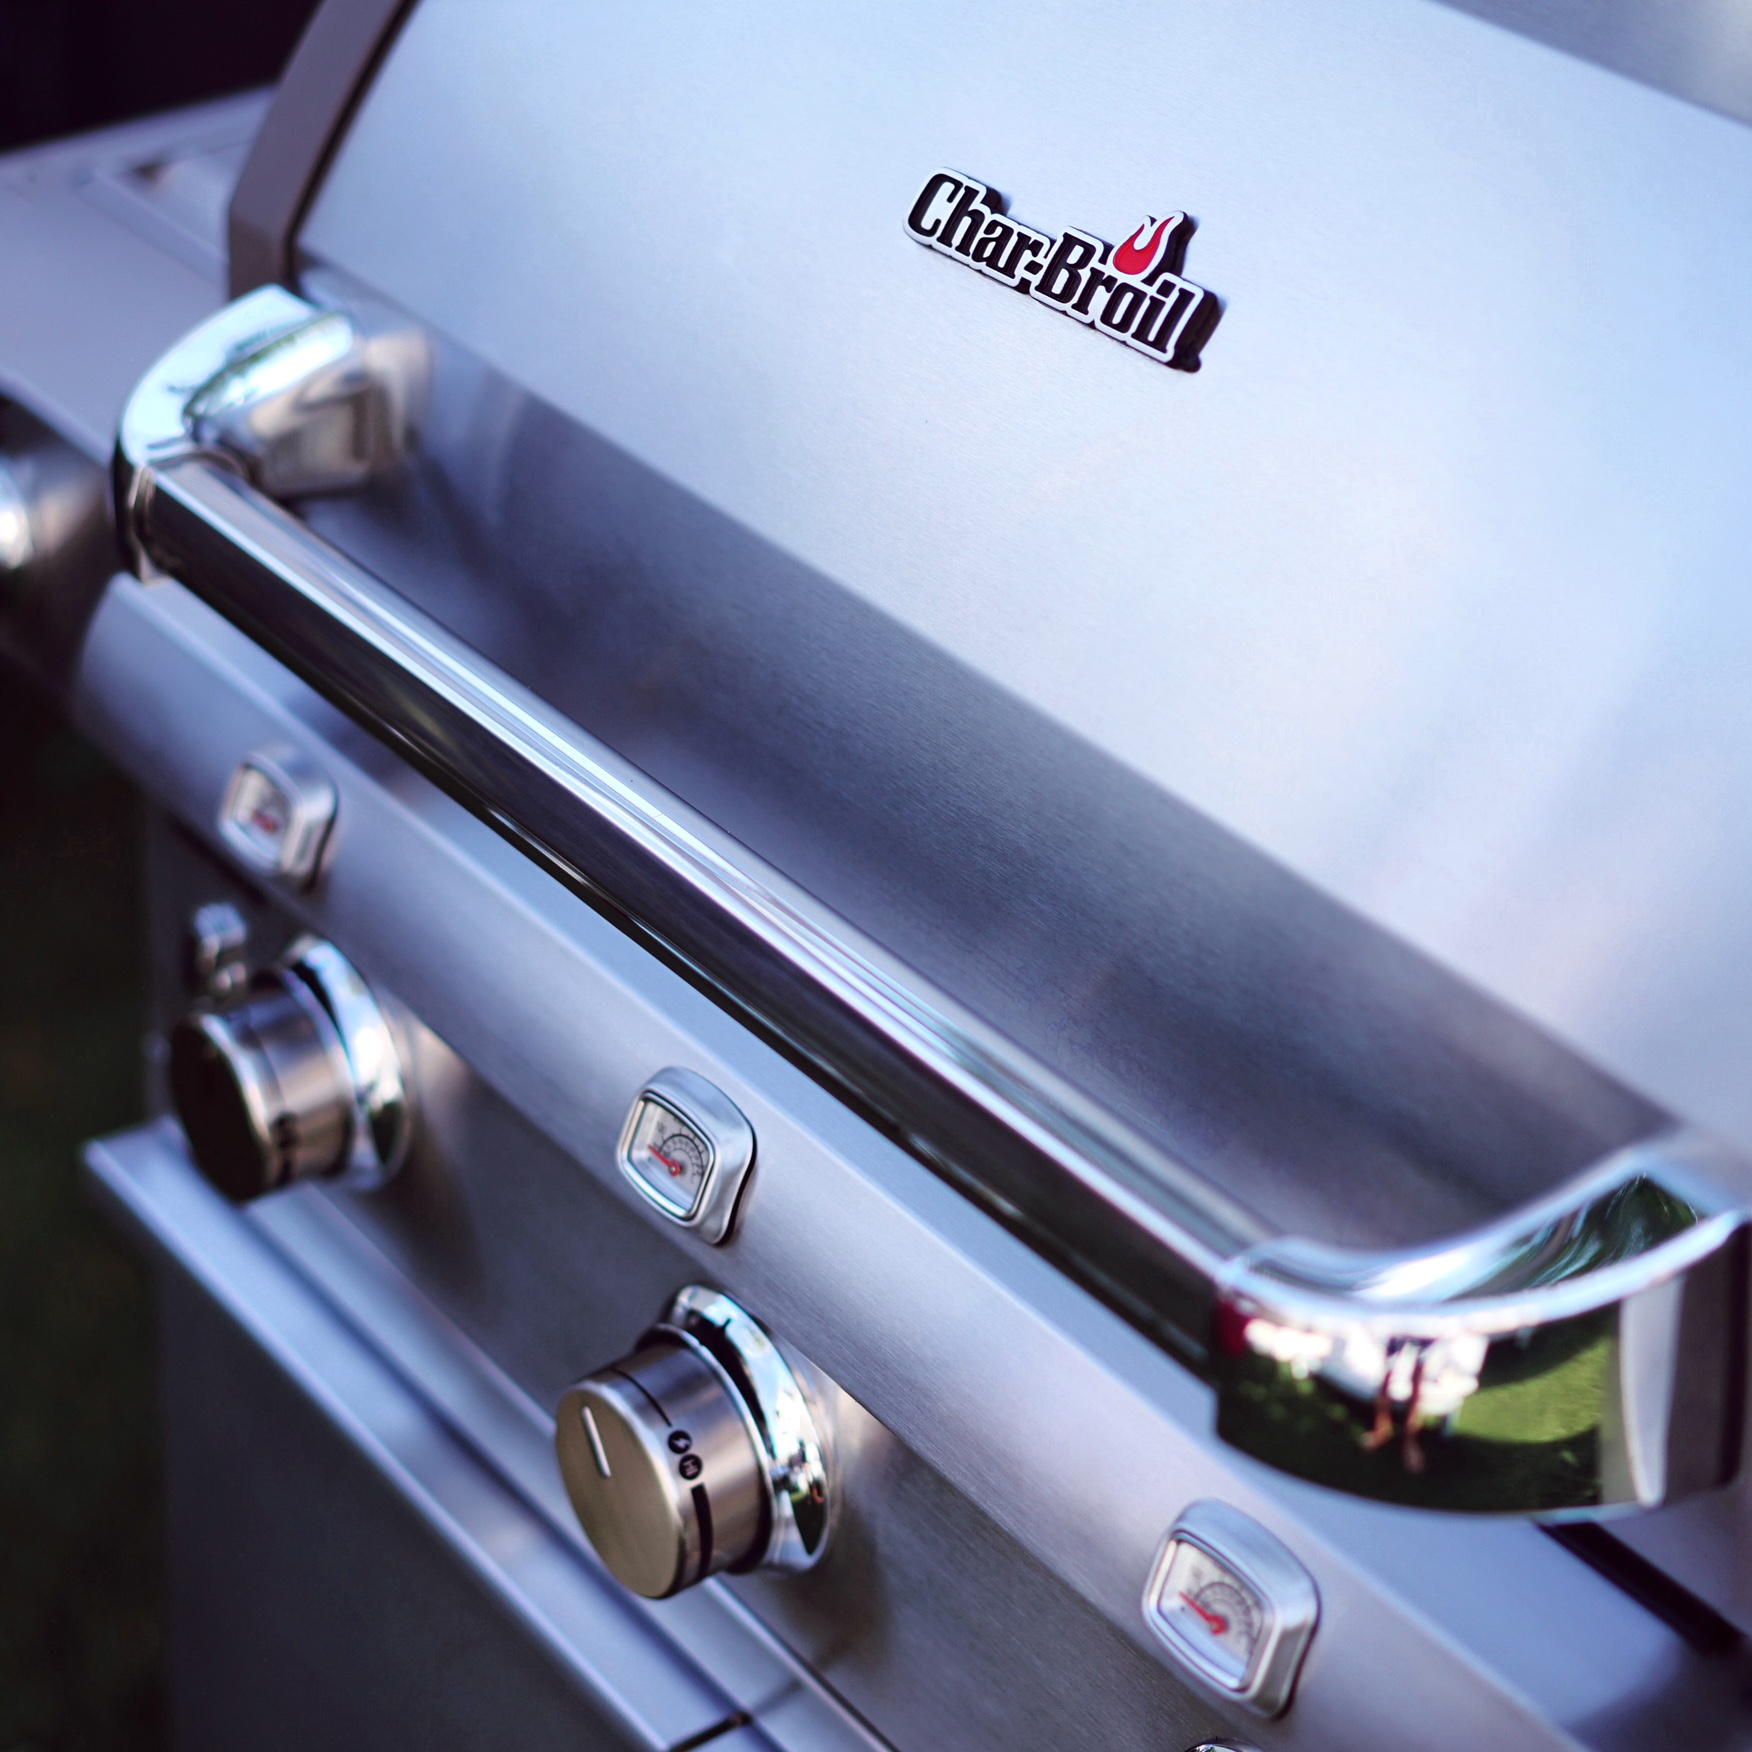 conseils-barbecue-réussi-char-broil-1